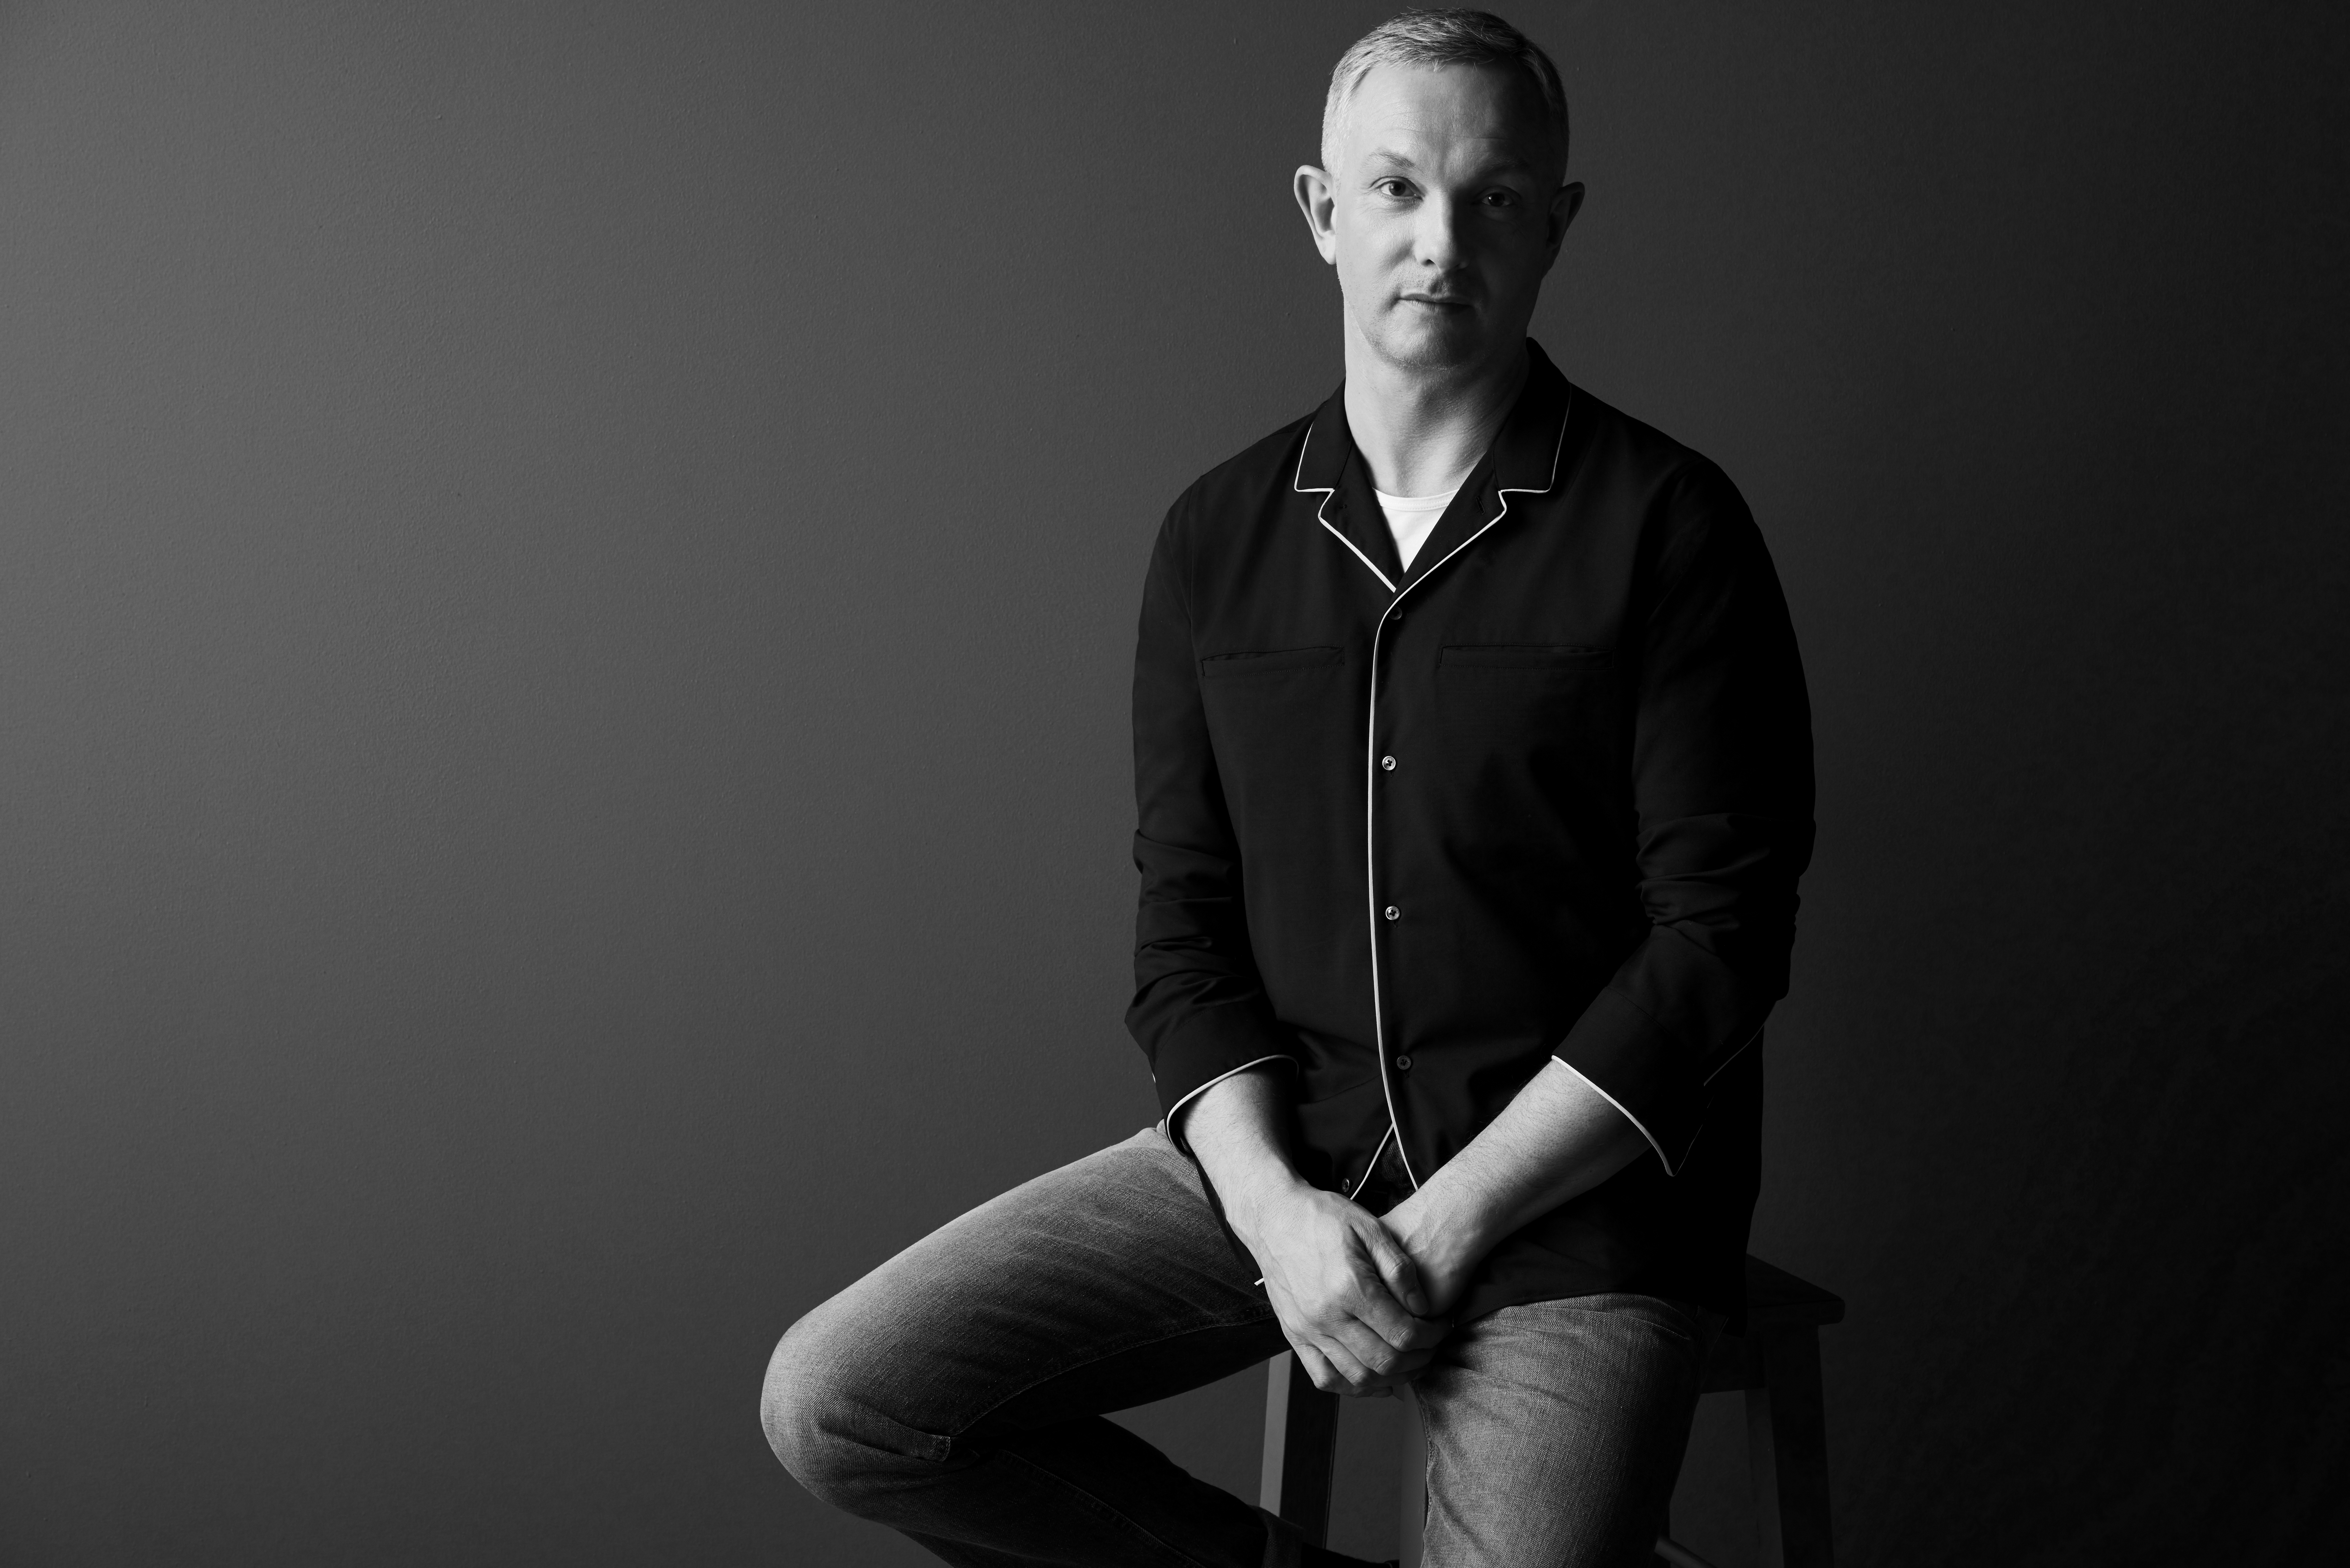 Redken announces Josh Wood as Global Color Creative Director.